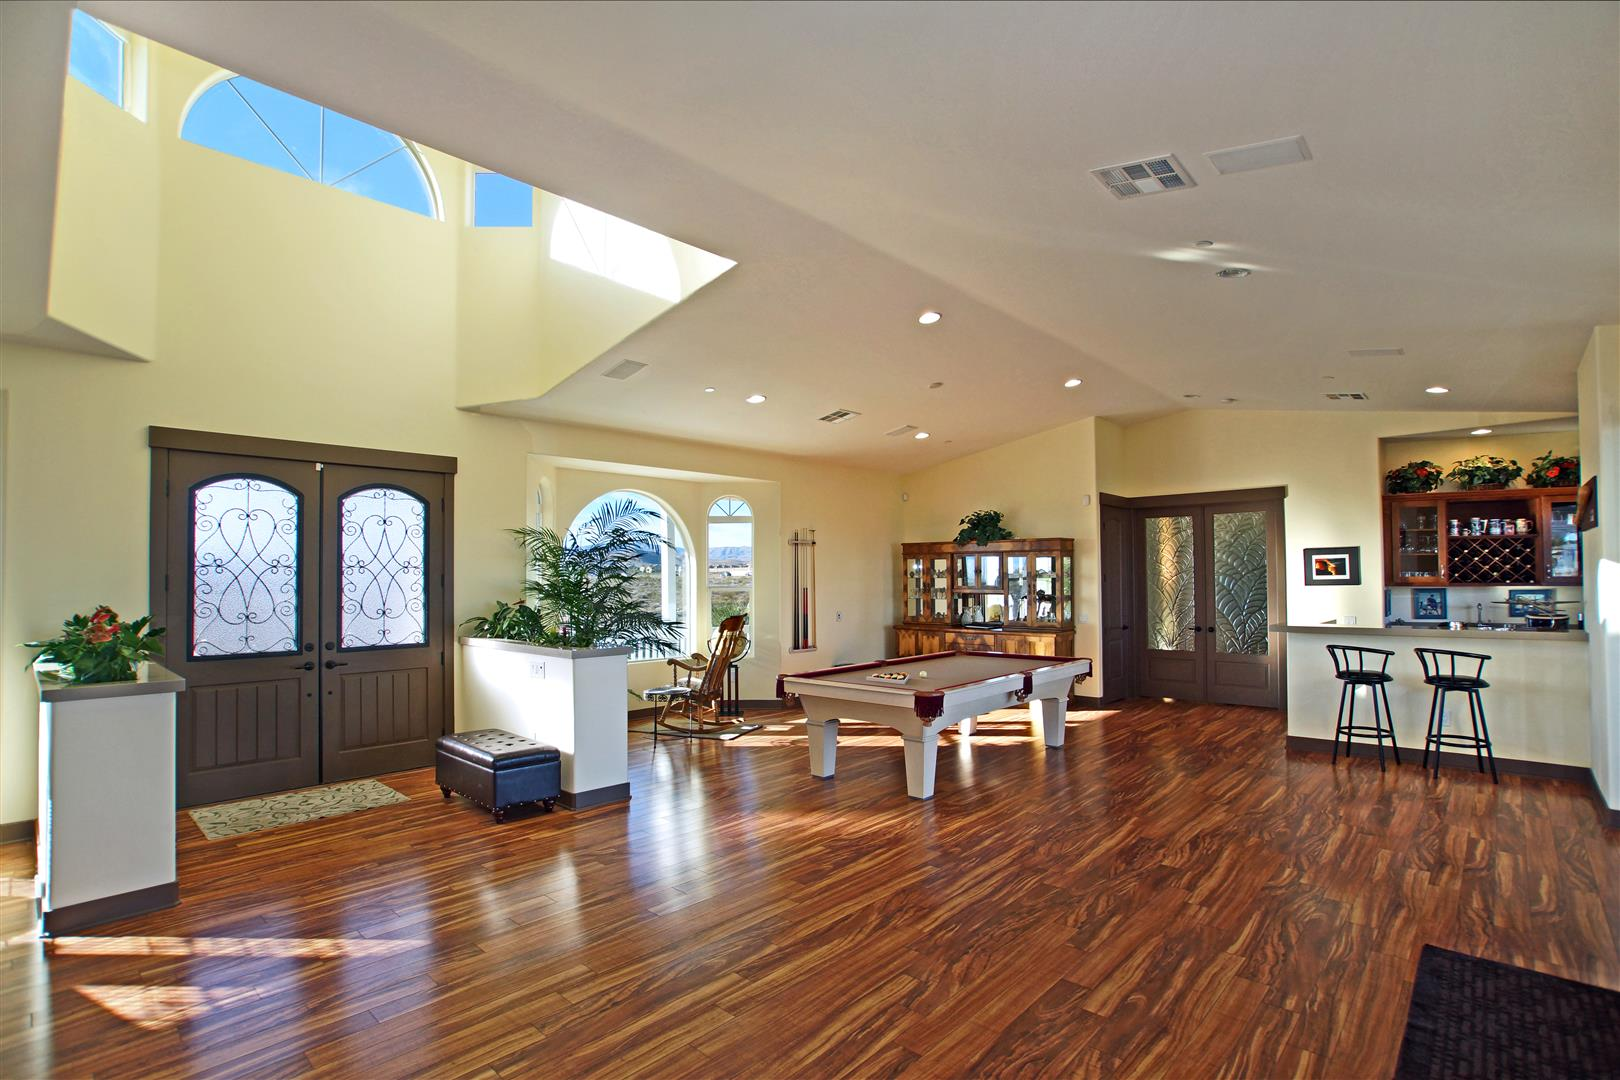 Cougar Custom Home Interior